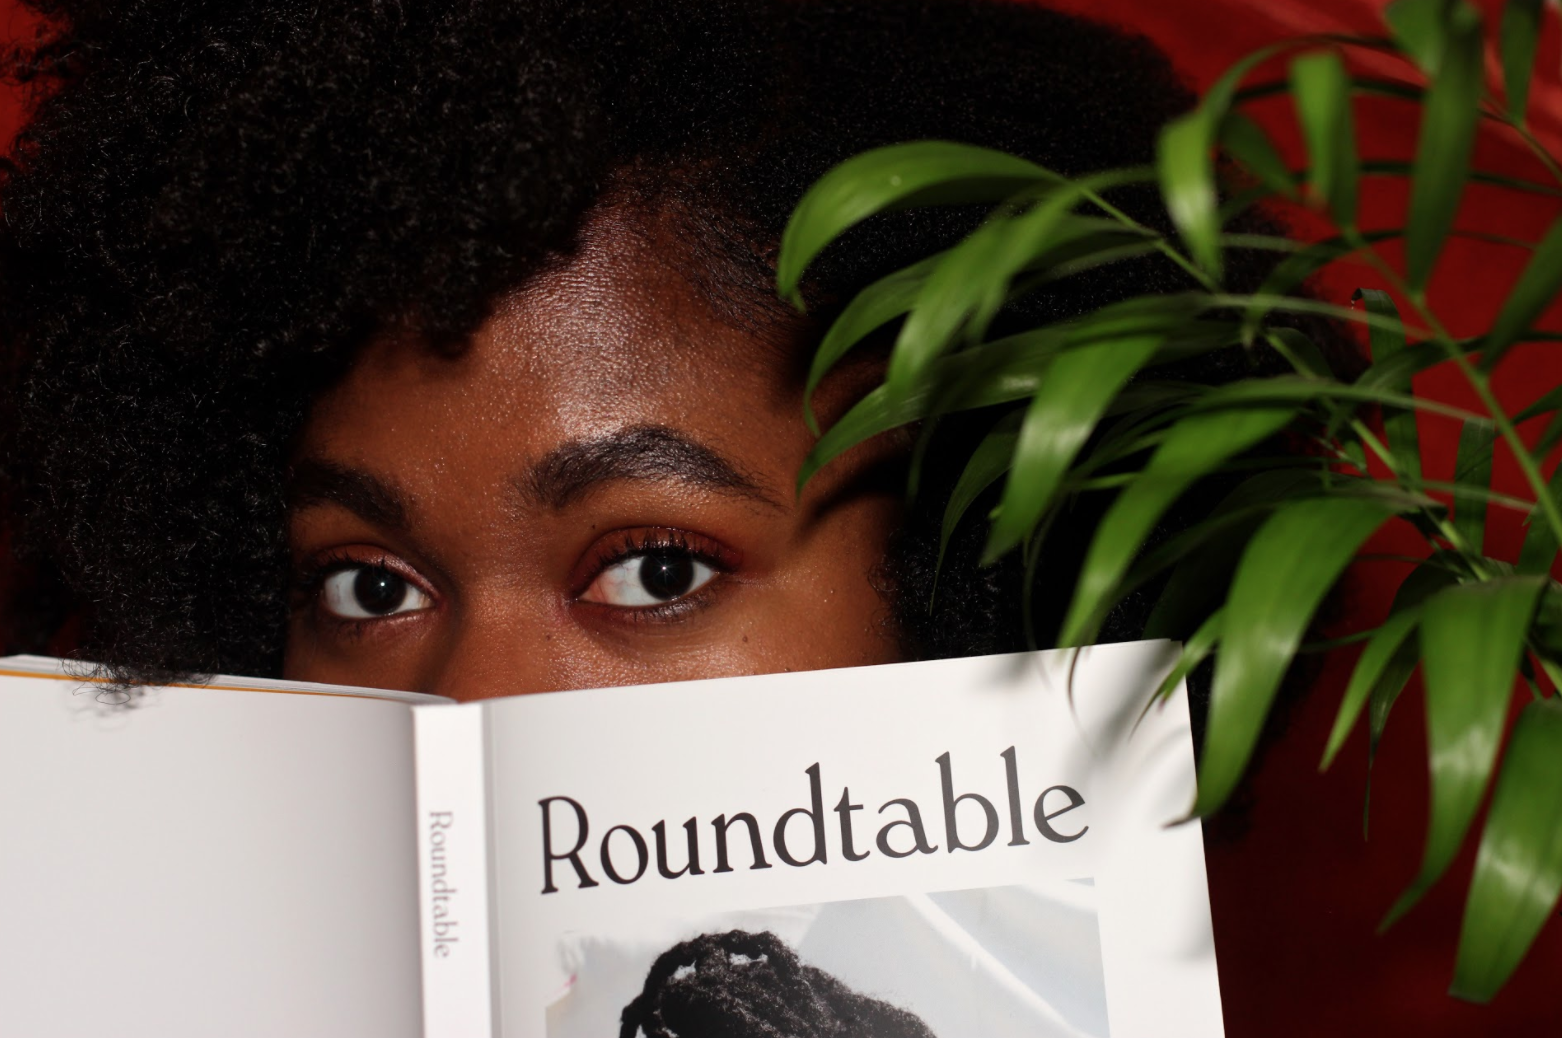 Roundtable Journal Ourselves and Others